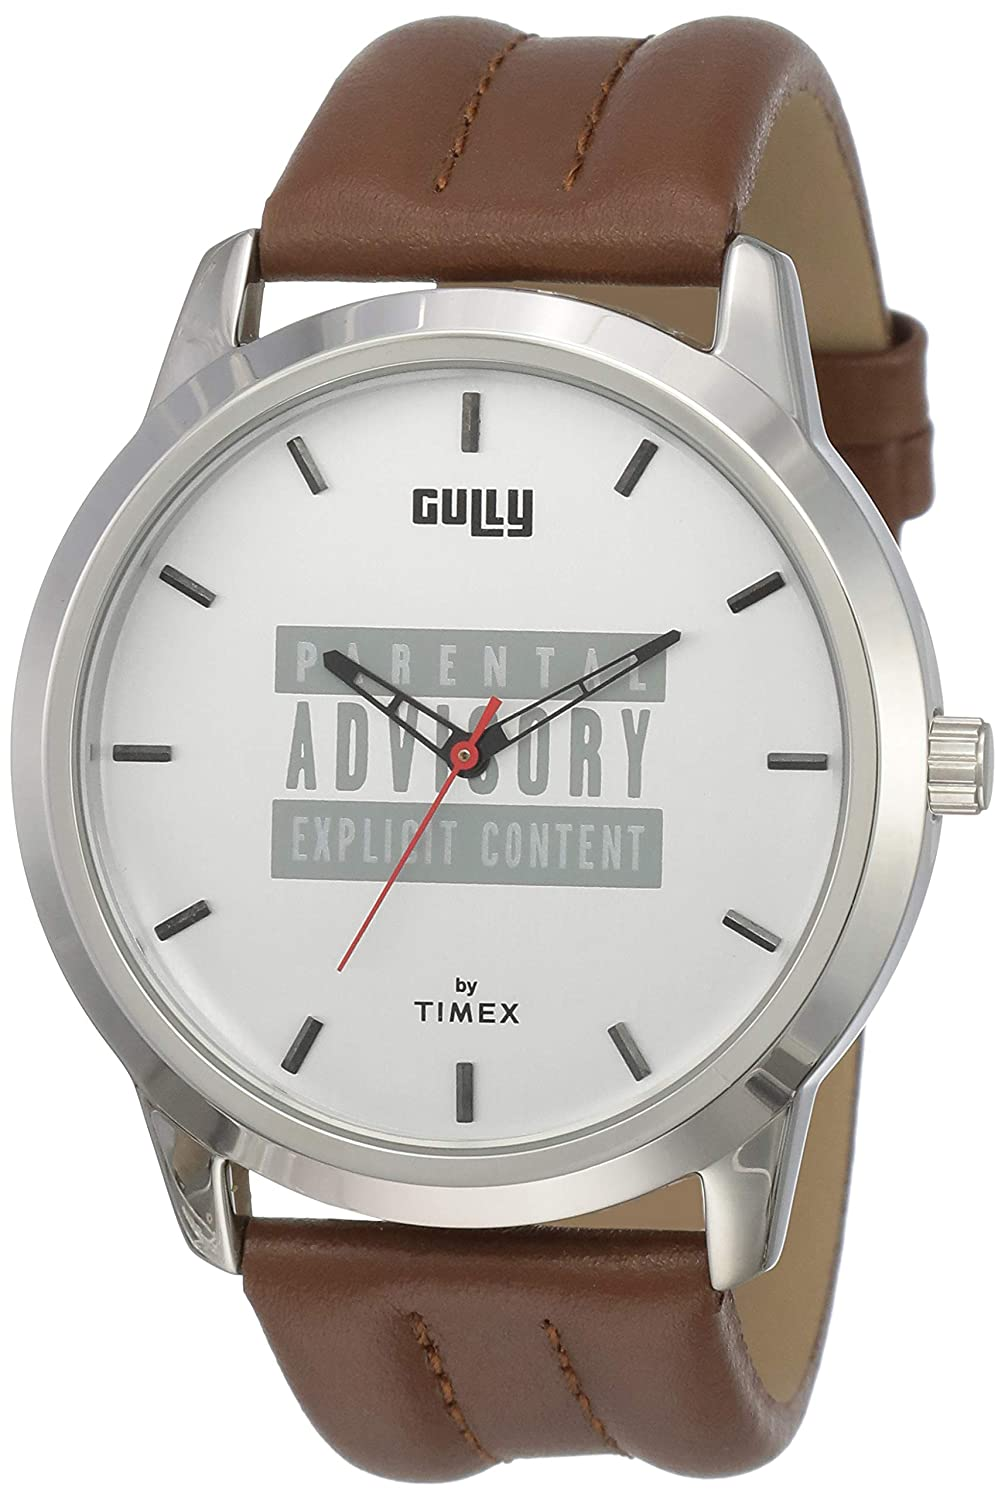 Gully By Best Timex TWEG15021 Watches Price Below 1000 Rs for men in India